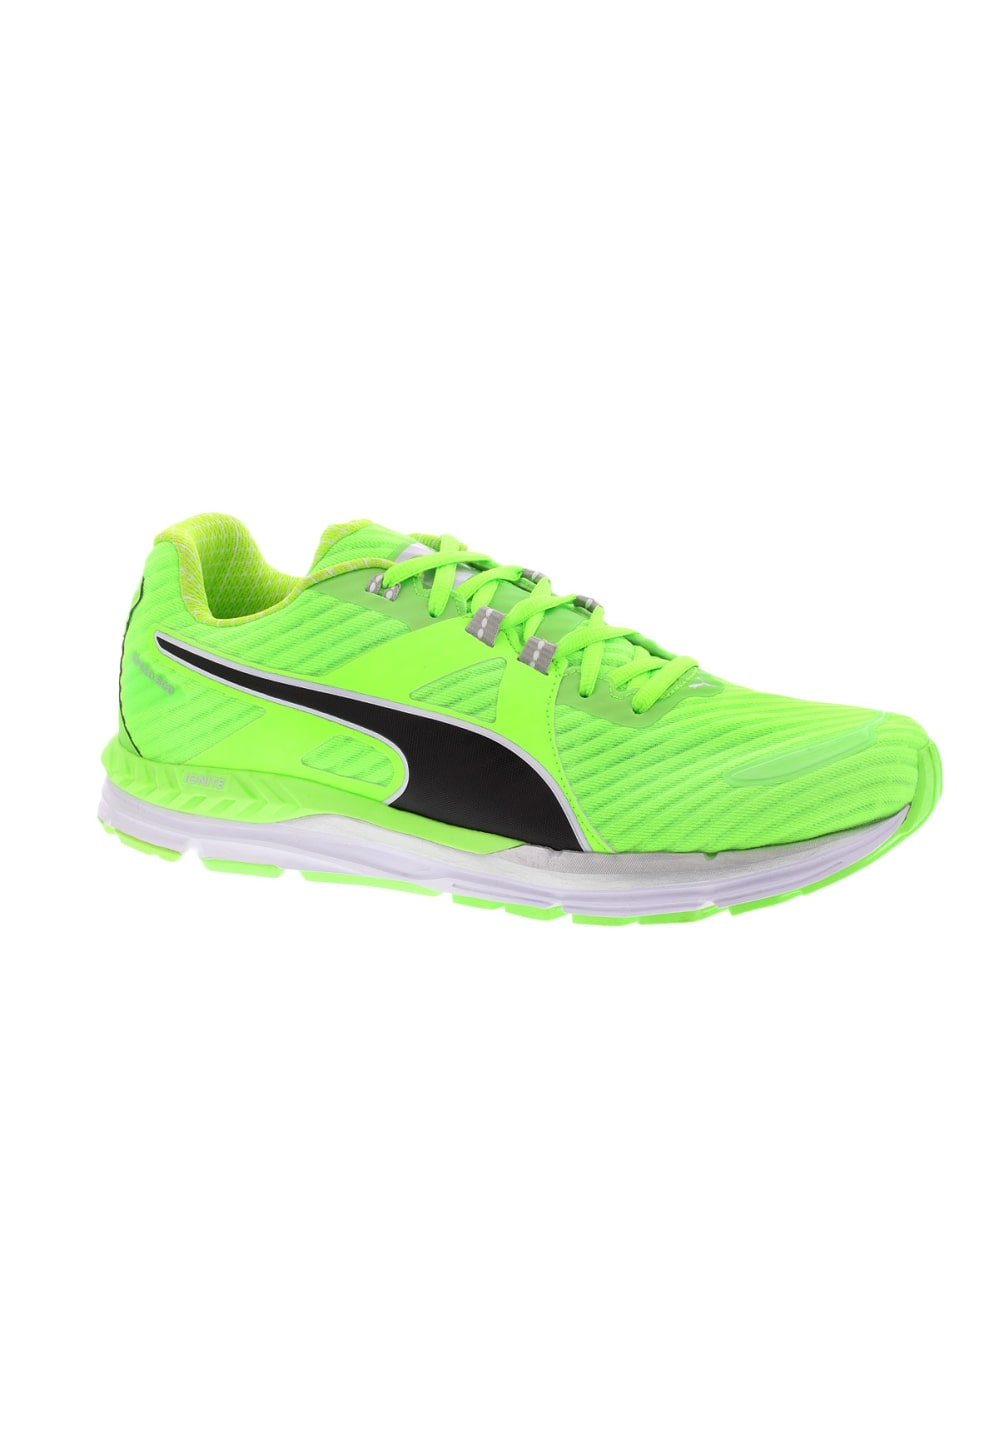 Homme Pwrcool Running 600 Pour Chaussures Ignite Vert Speed Puma shdtQr